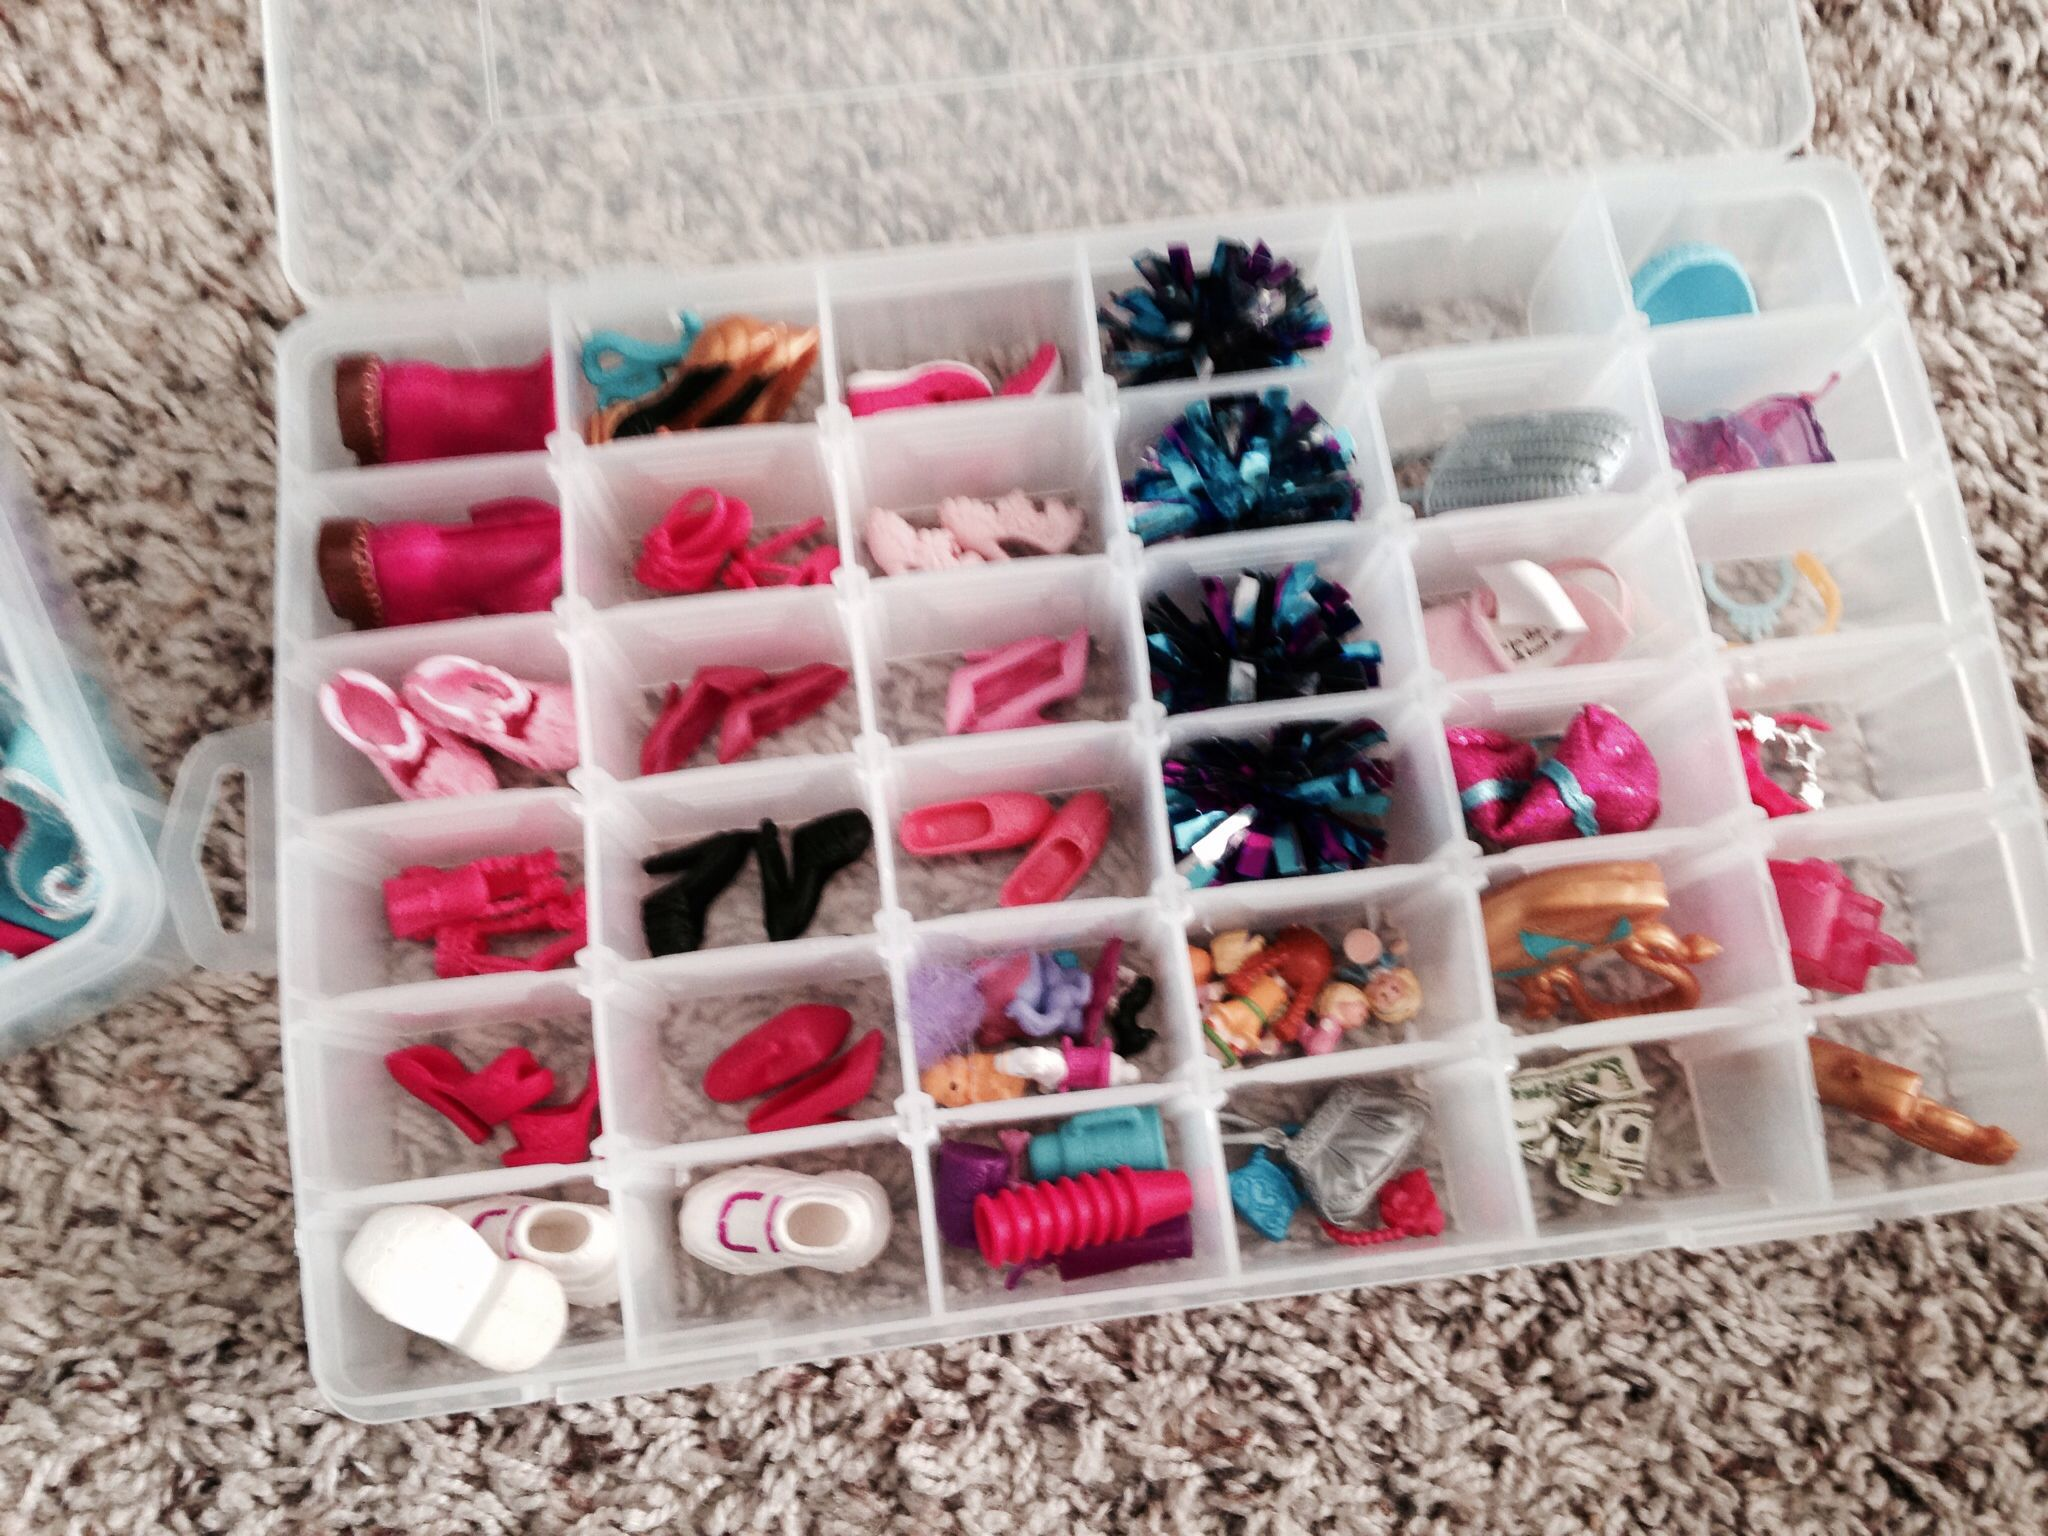 Barbie Organizing Barbie Pinterest Organizations Organizing - Barbie doll storage ideas